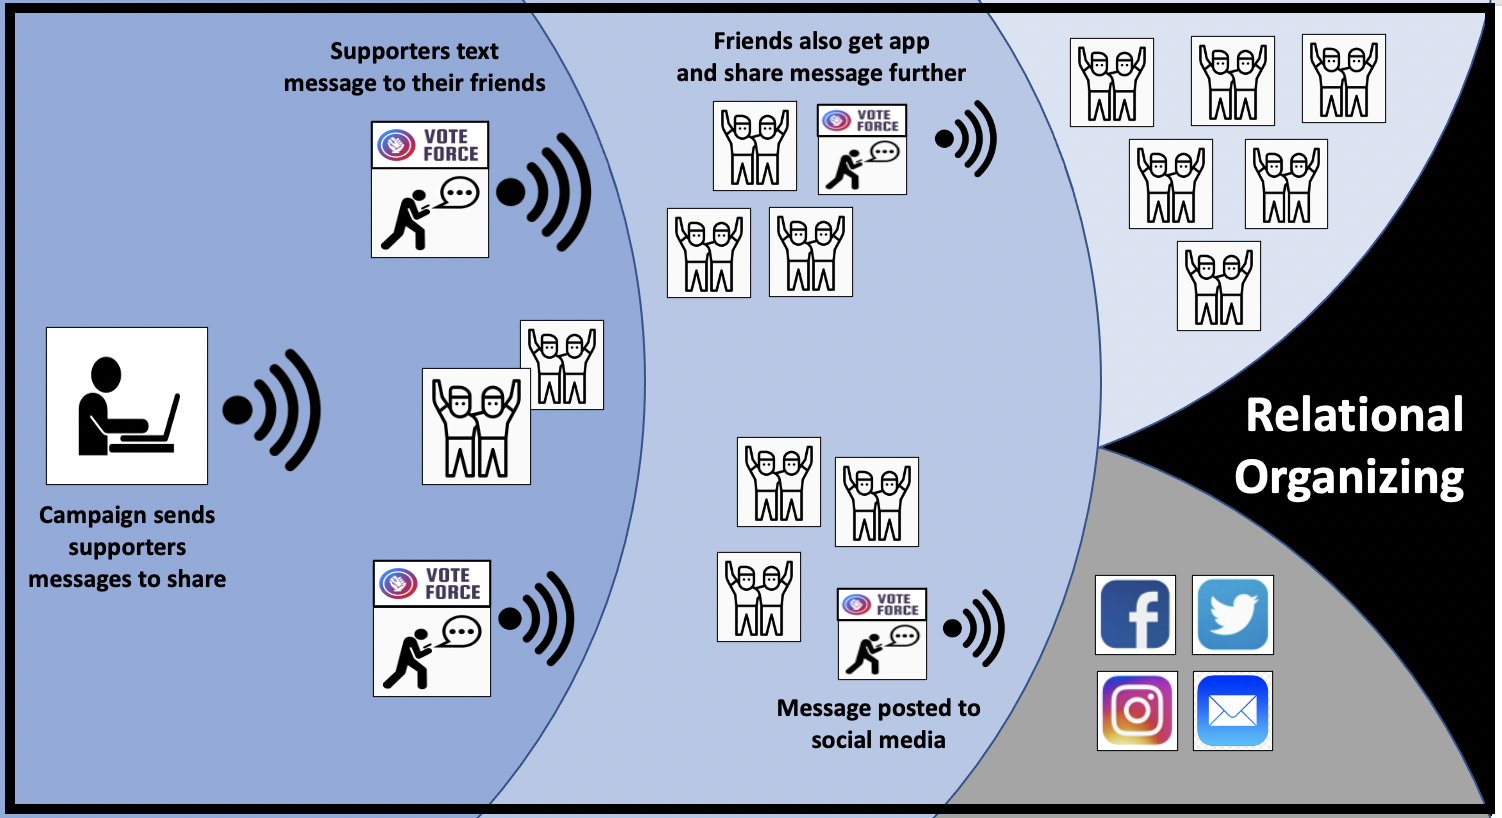 Relational organizing uses supporters' personal networks to reach more people faster and for less money than traditional advertising.